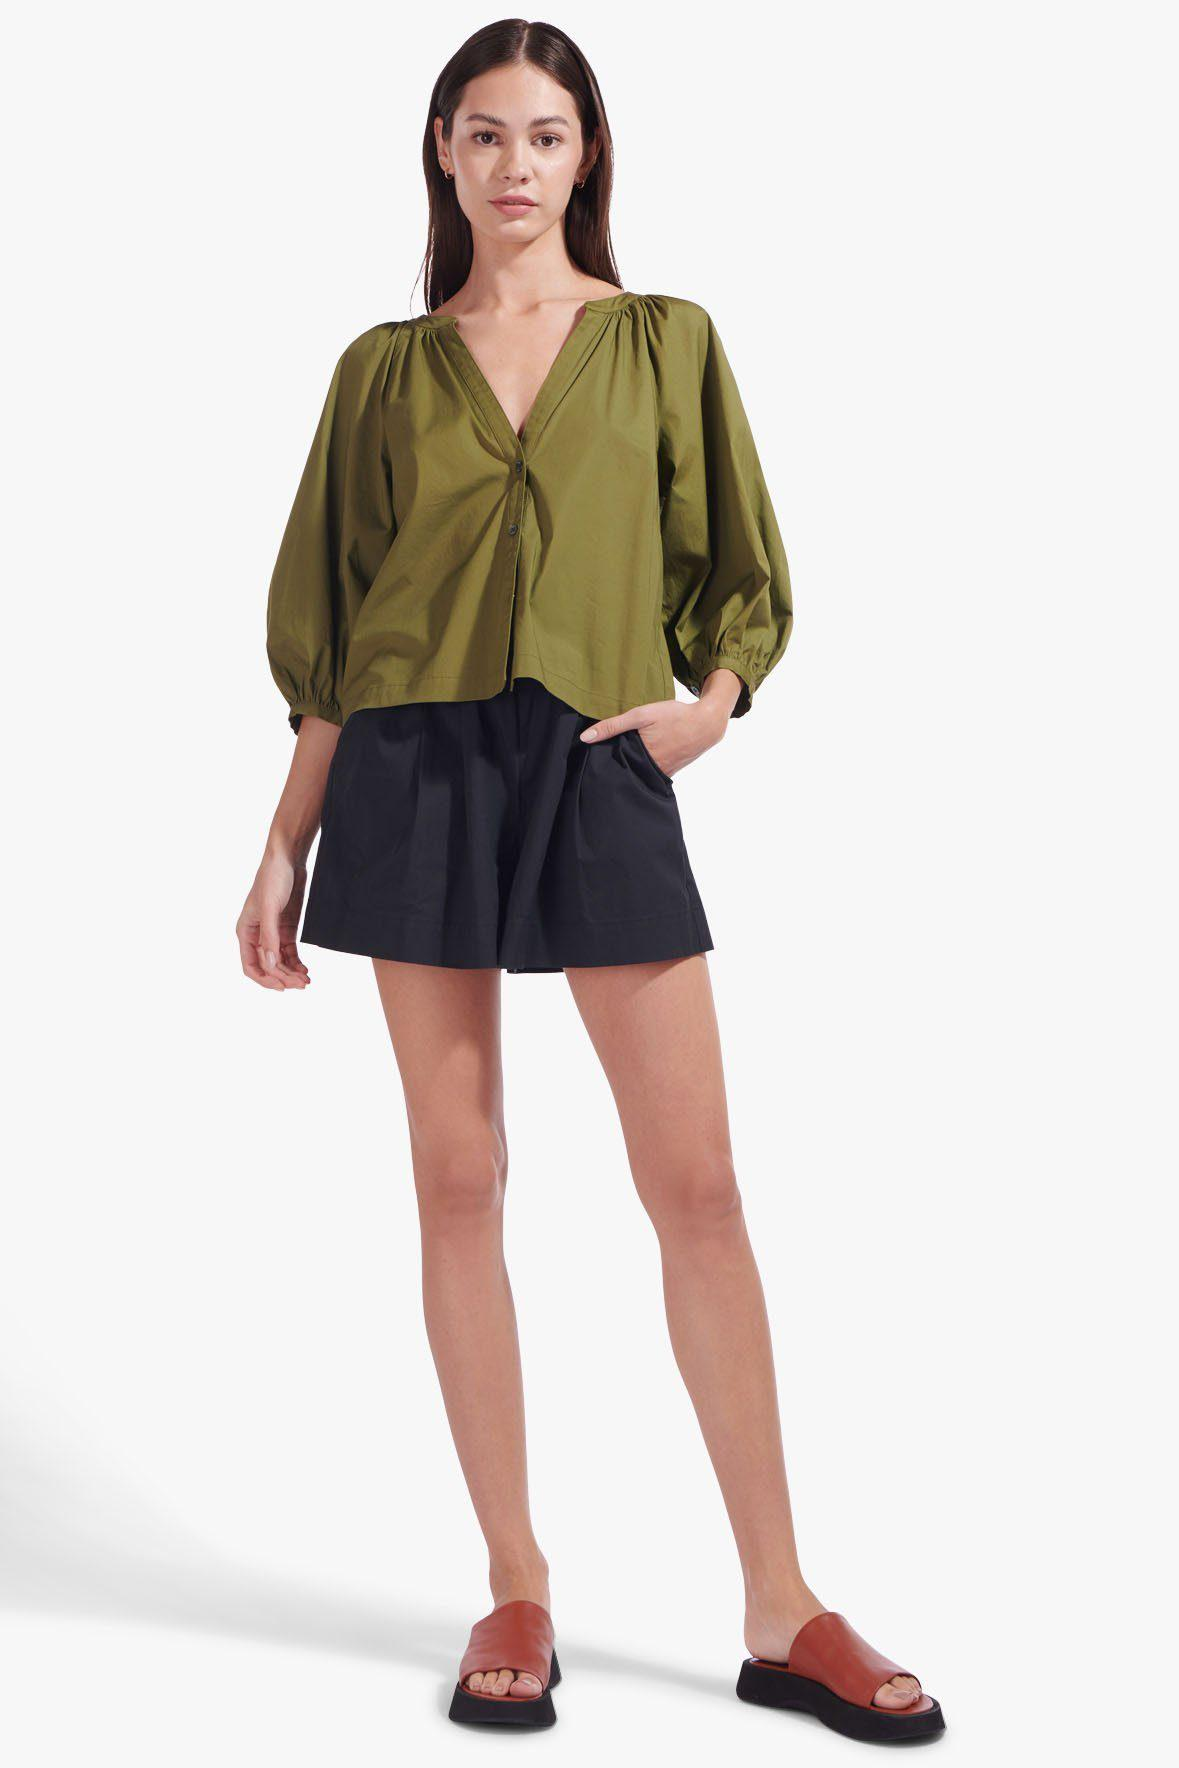 DILL TOP | OLIVE